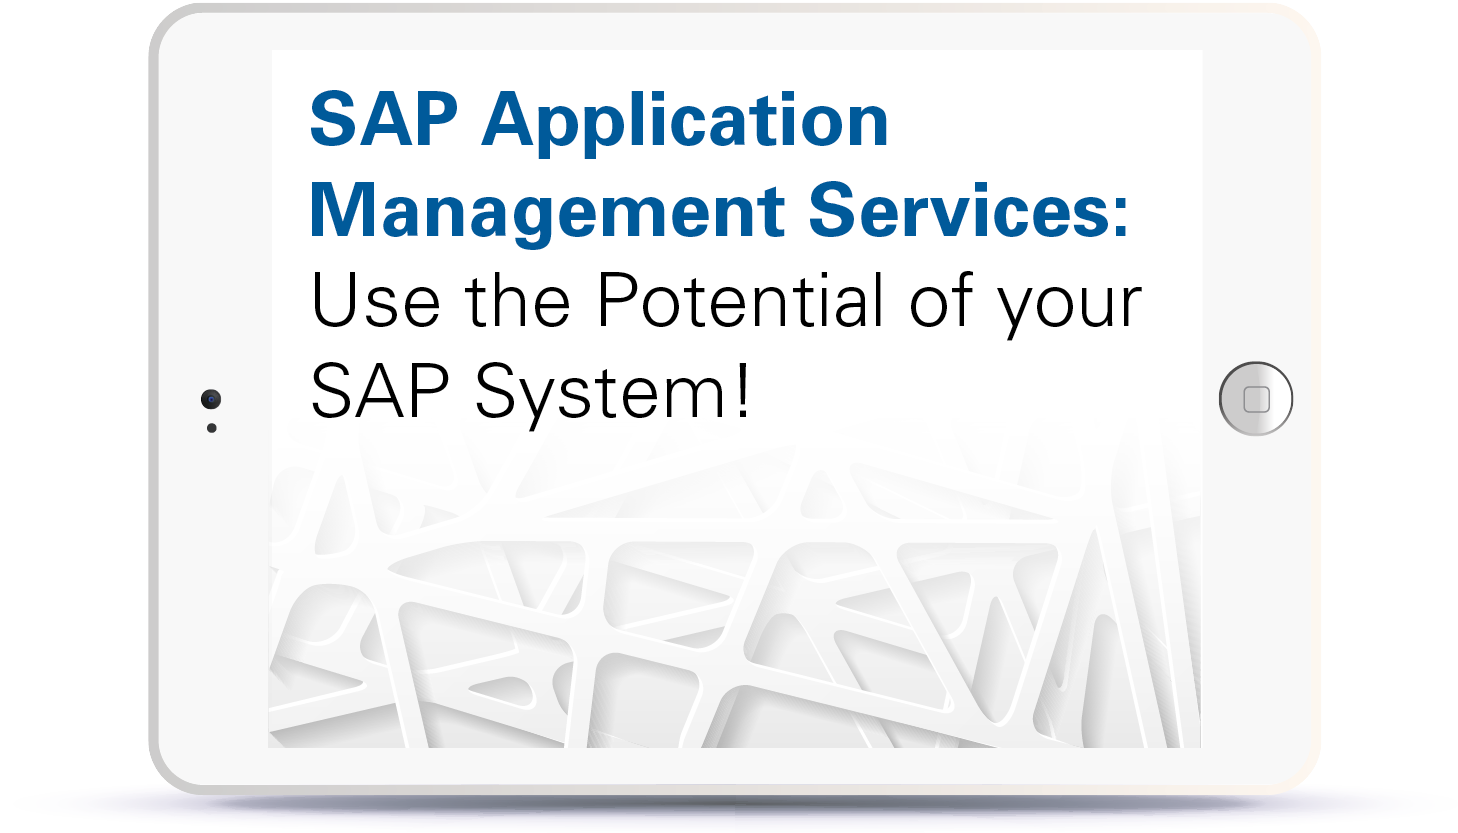 webiner sap application management services use the potential of your sap systems